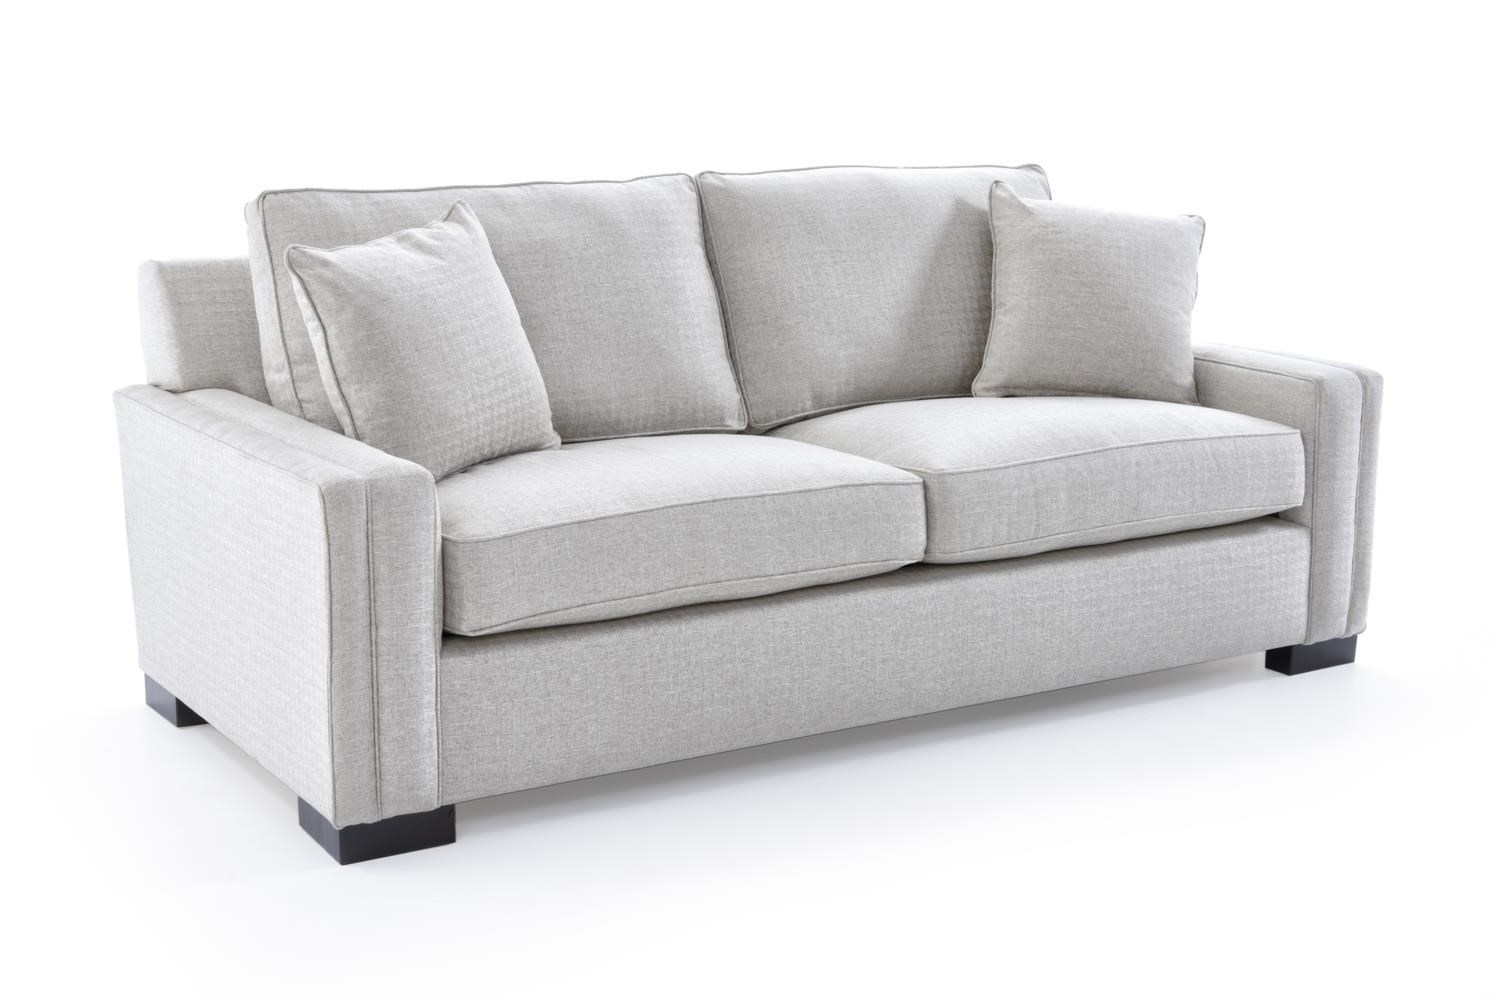 broyhill sleeper sofa oliver american leather larissa queen